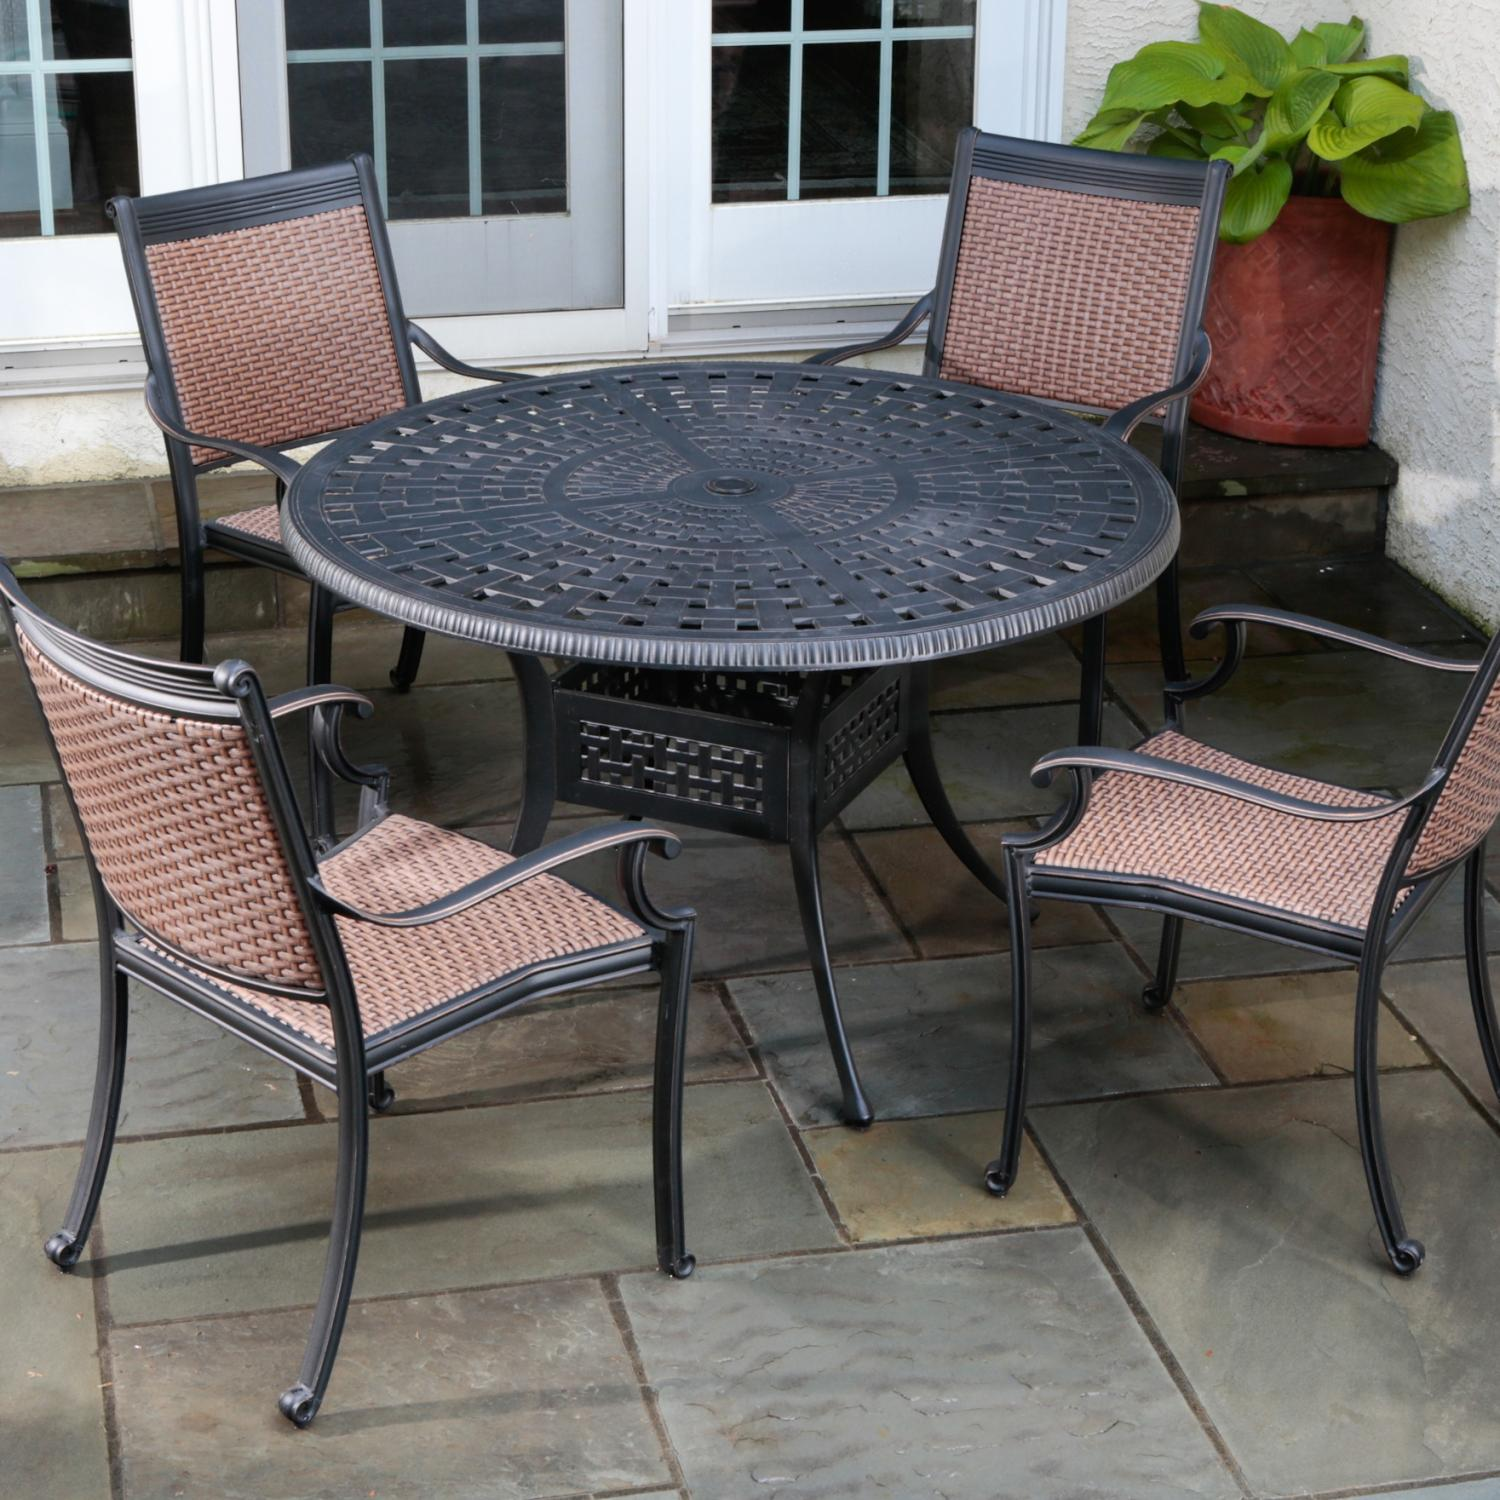 Alfresco Home Pilot 4 Person All Weather Wicker Dining Set